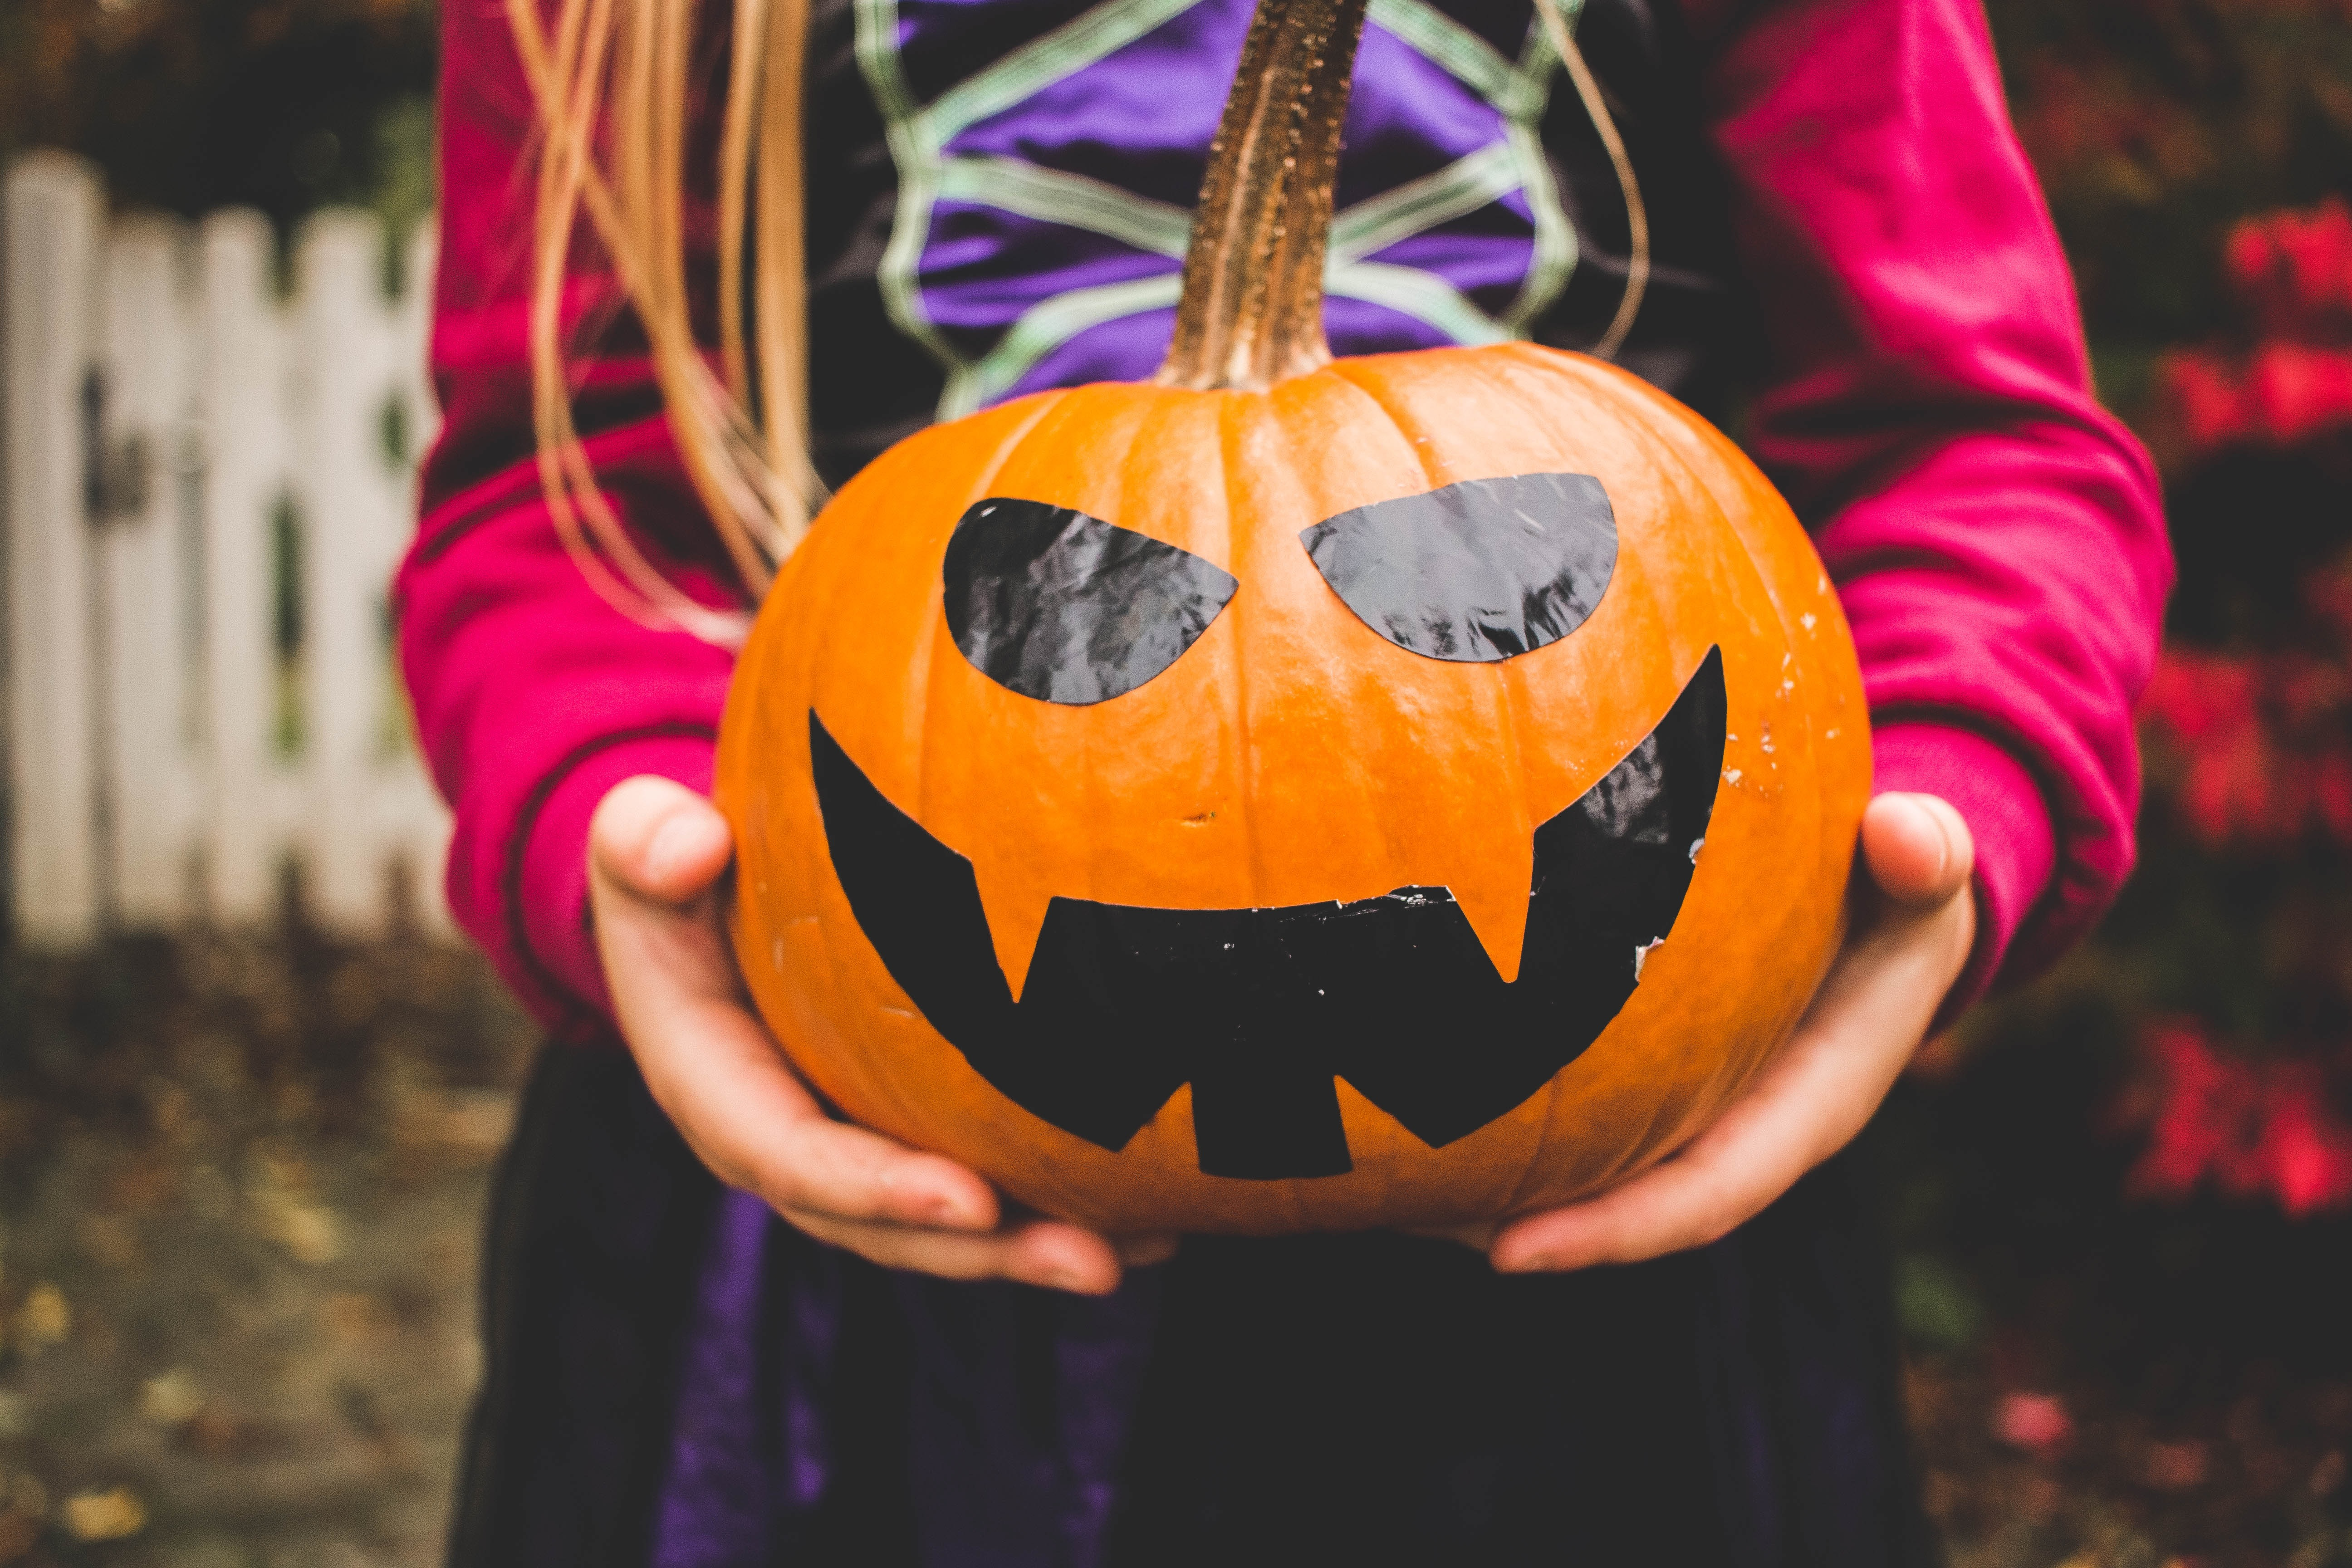 Eventos De Halloween 2020 En Houston Tx Houston Halloween Events | Trick or Treating & Ghost Tours